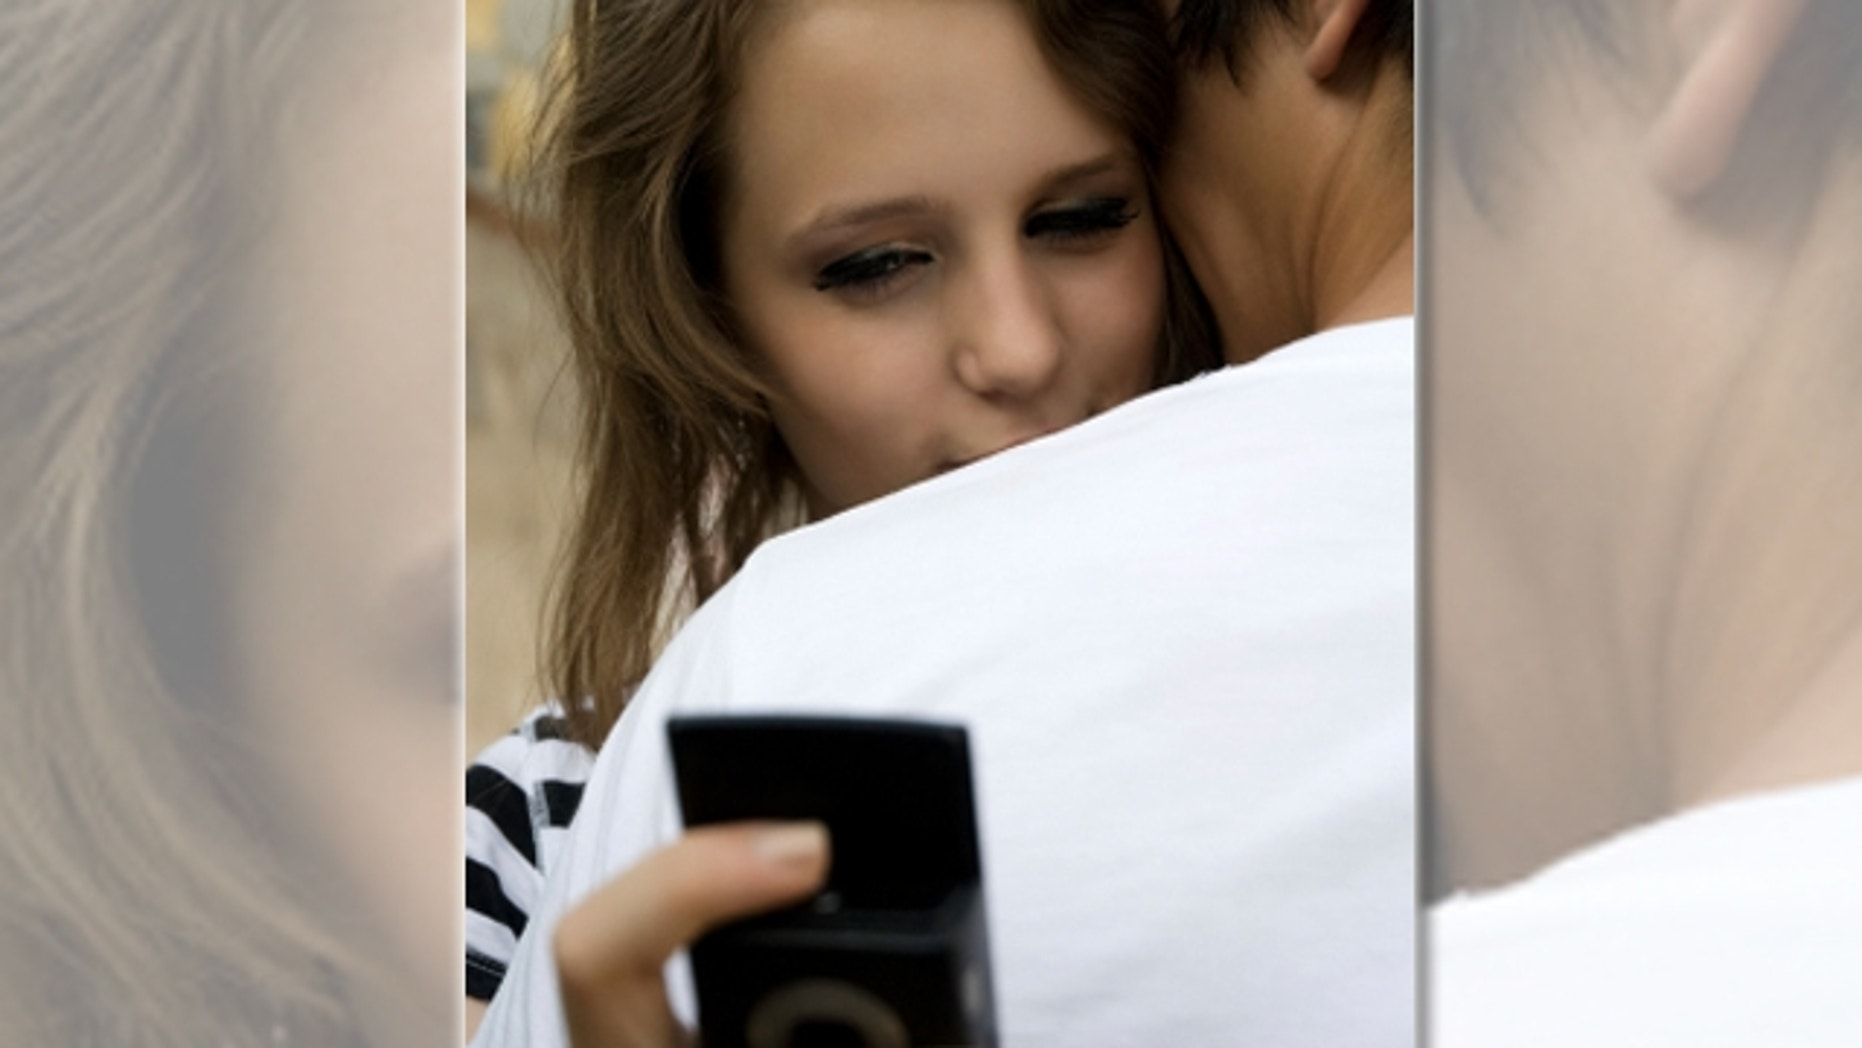 New software helps catch unfaithful spouses